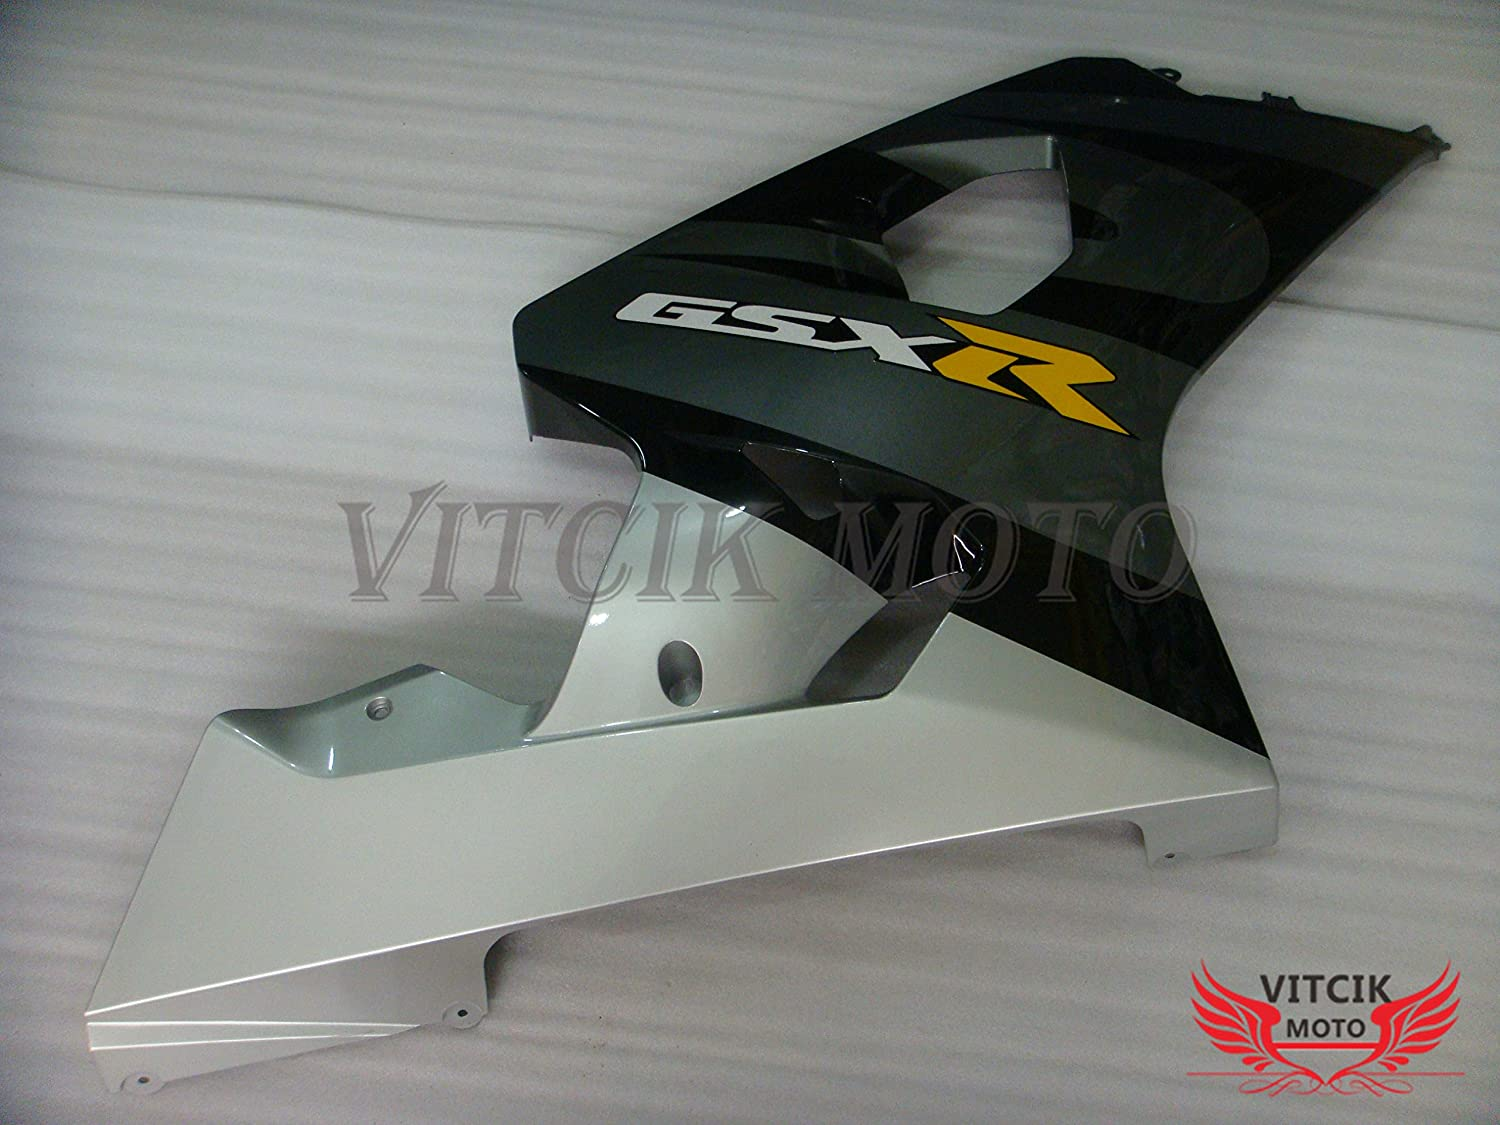 VITCIK Black /& Gray Fairing Kits Fit for Suzuki GSX-R750 GSX-R600 K4 2004 2005 GSXR 600 750 K4 04 05 Plastic ABS Injection Mold Complete Motorcycle Body Aftermarket Bodywork Frame A055